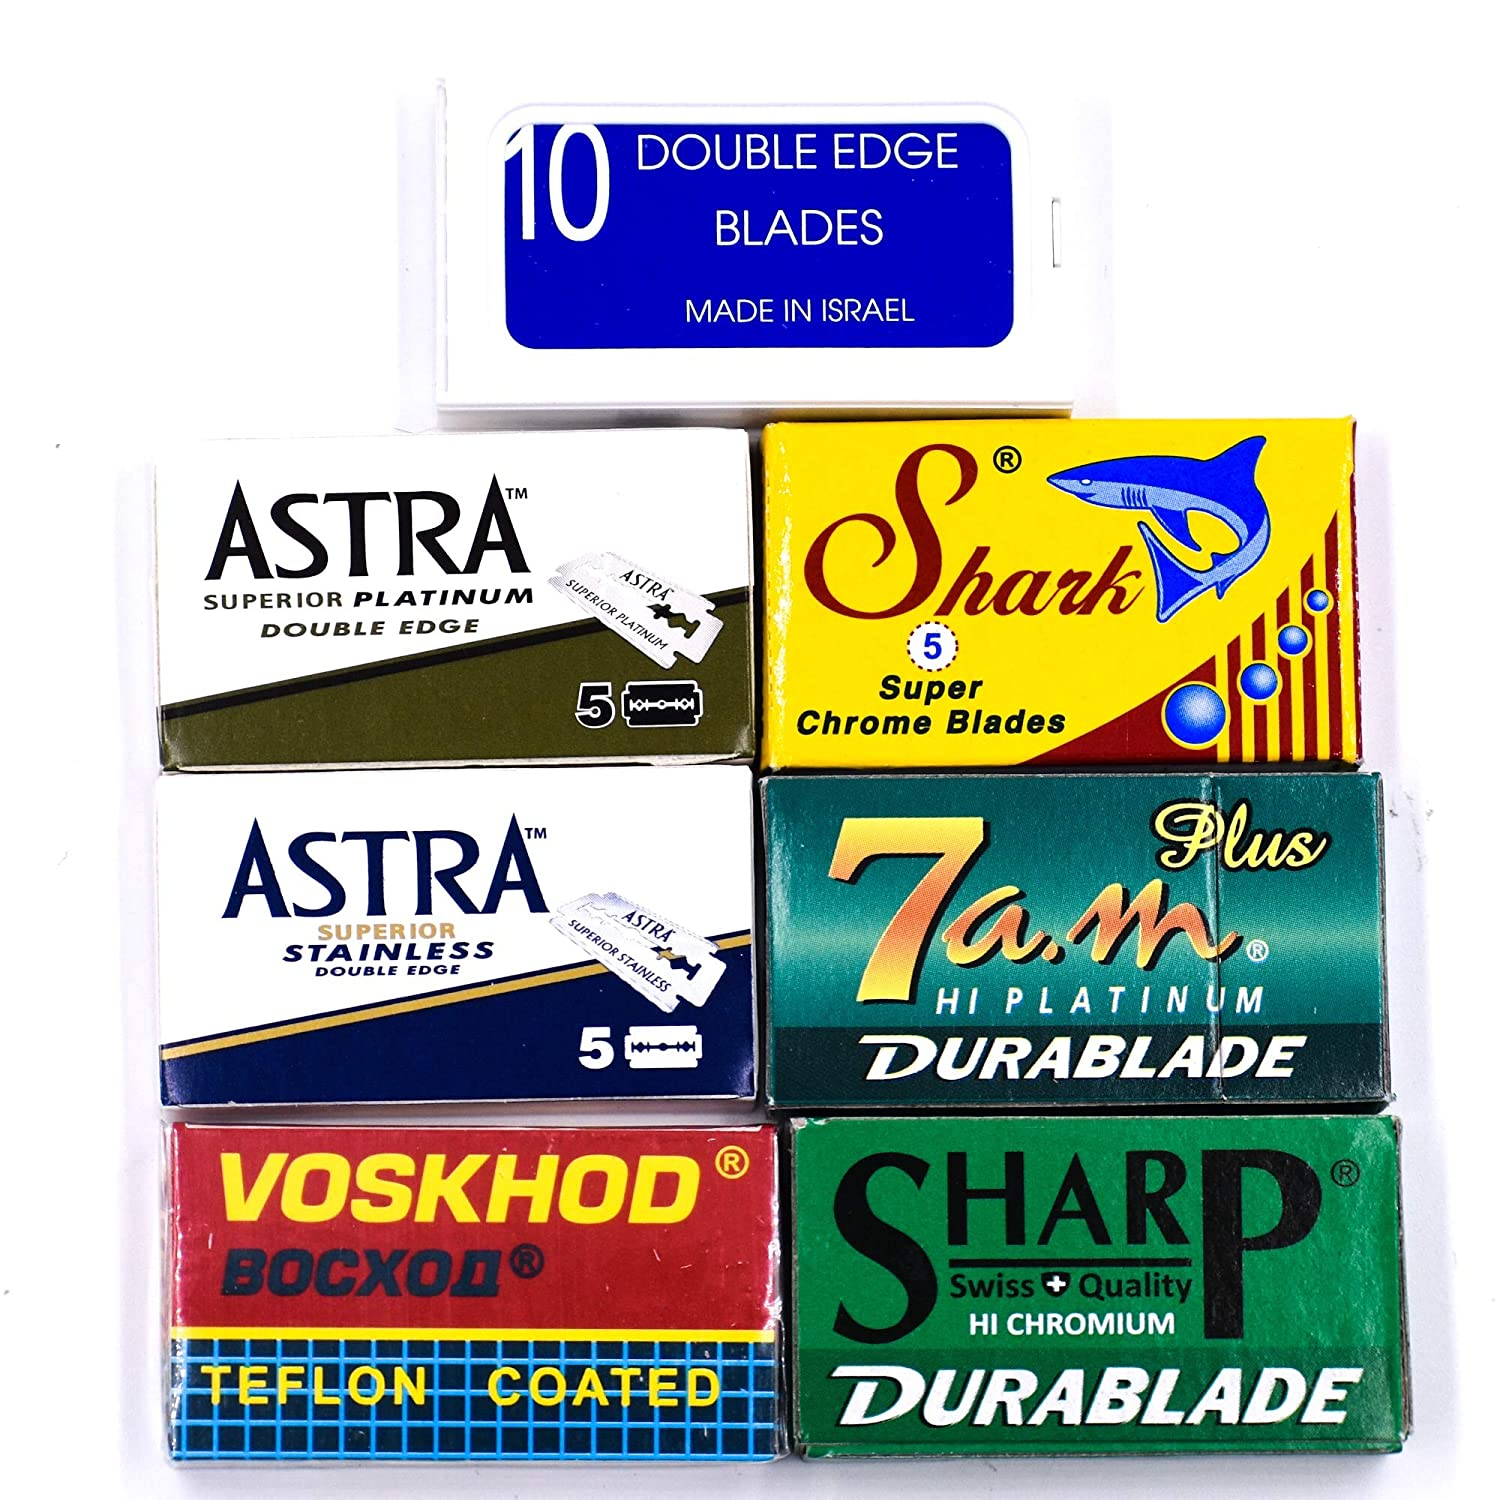 Double Edge Safety Razor Blade Variety Sampler Pack, 100 Blades Compatible with All Standard Double Edge Safety Razors - Includes Blades from Crystal, Astra, Shark, Sharp, Voskhod, 7am